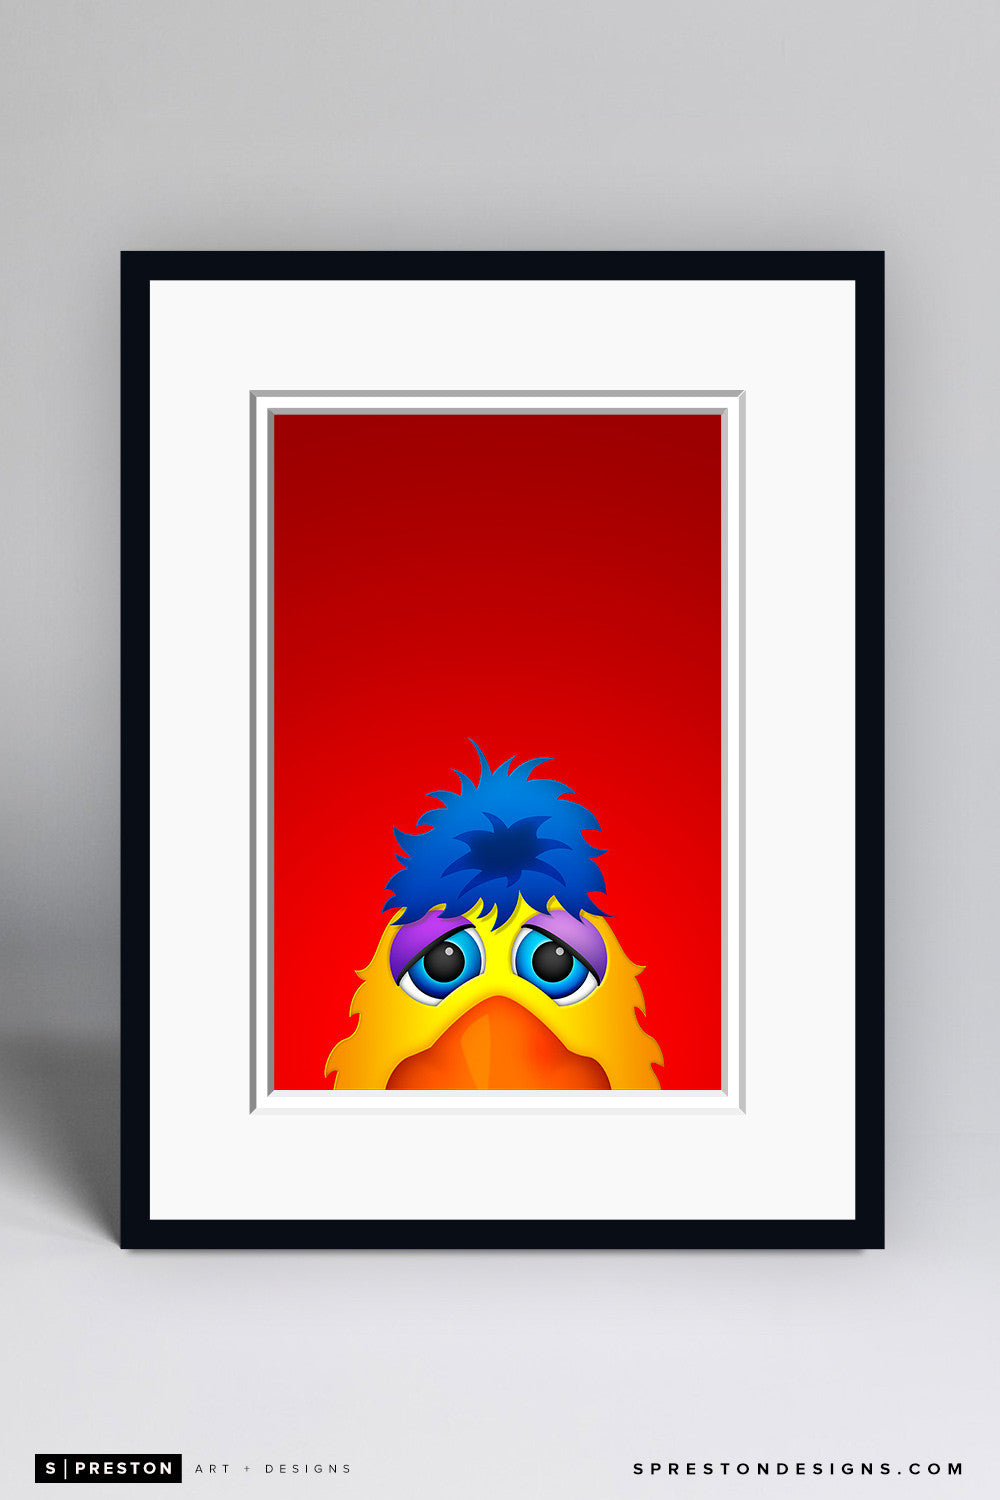 Minimalist San Diego Chicken Art Print - San Diego Padres - S. Preston Art + Designs